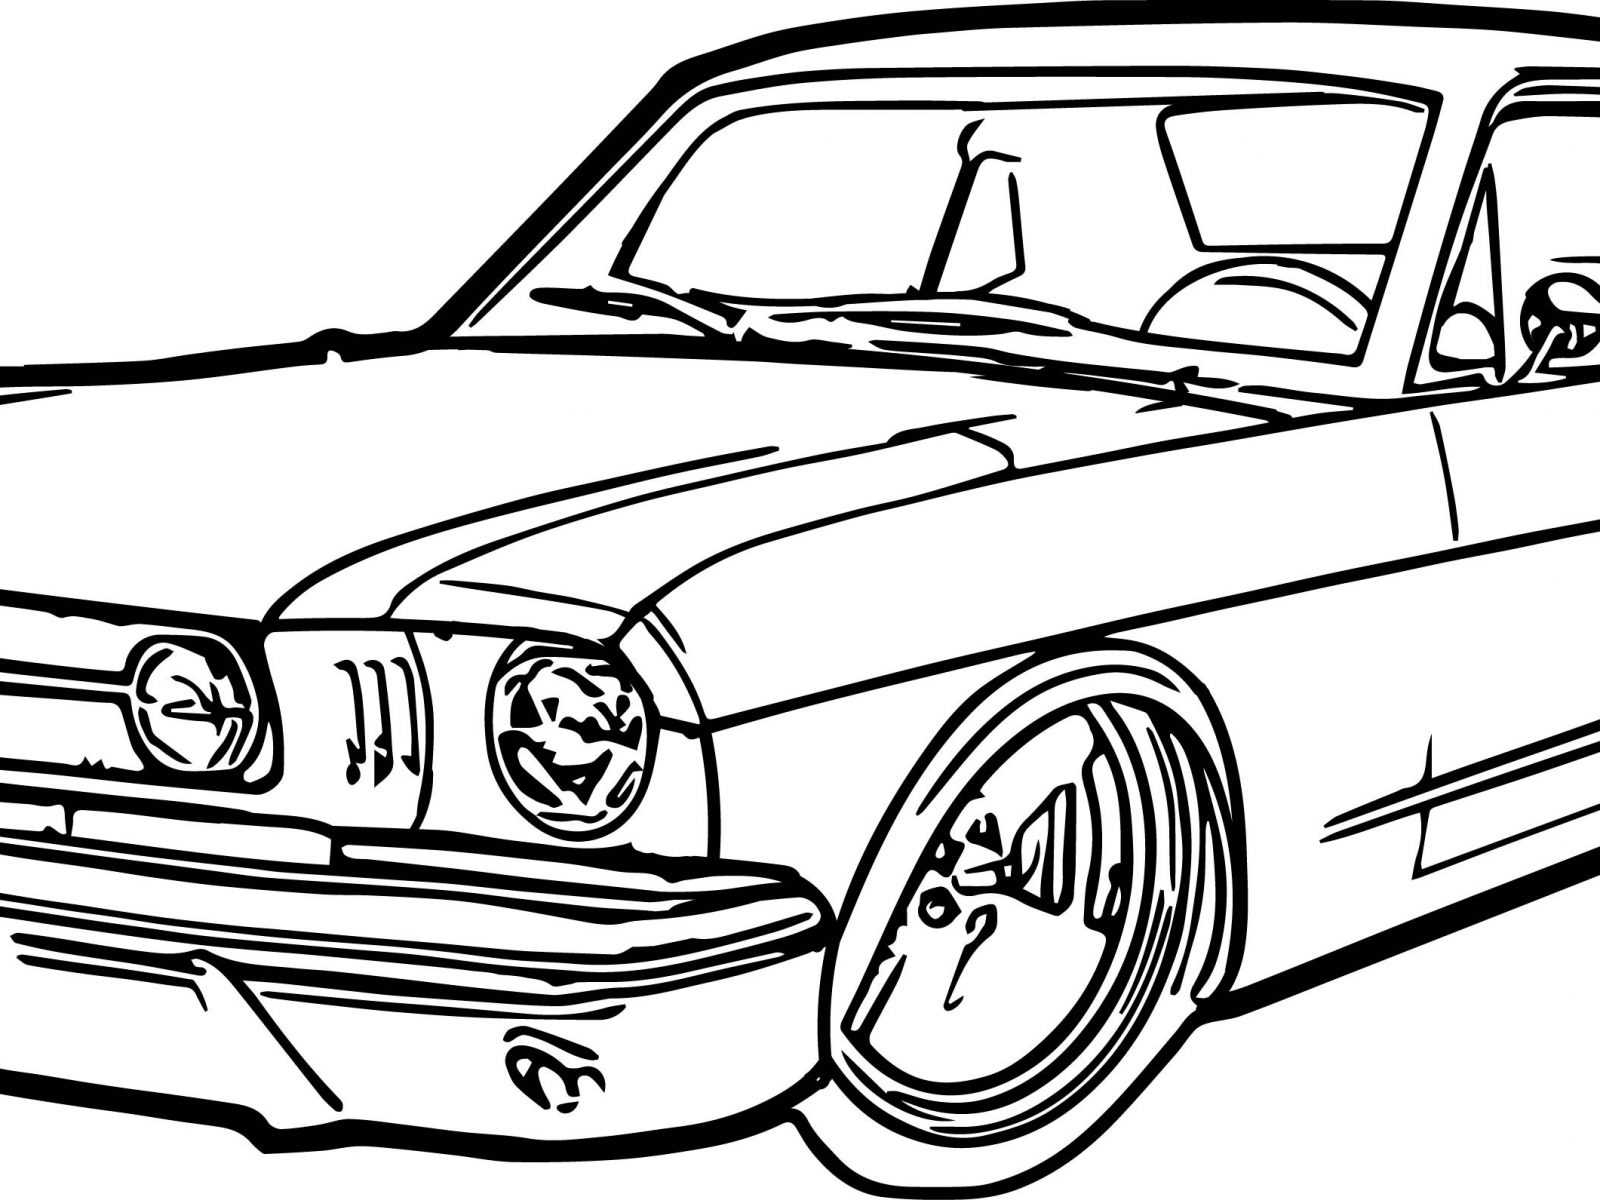 Car Logo Coloring Pages At Getcolorings